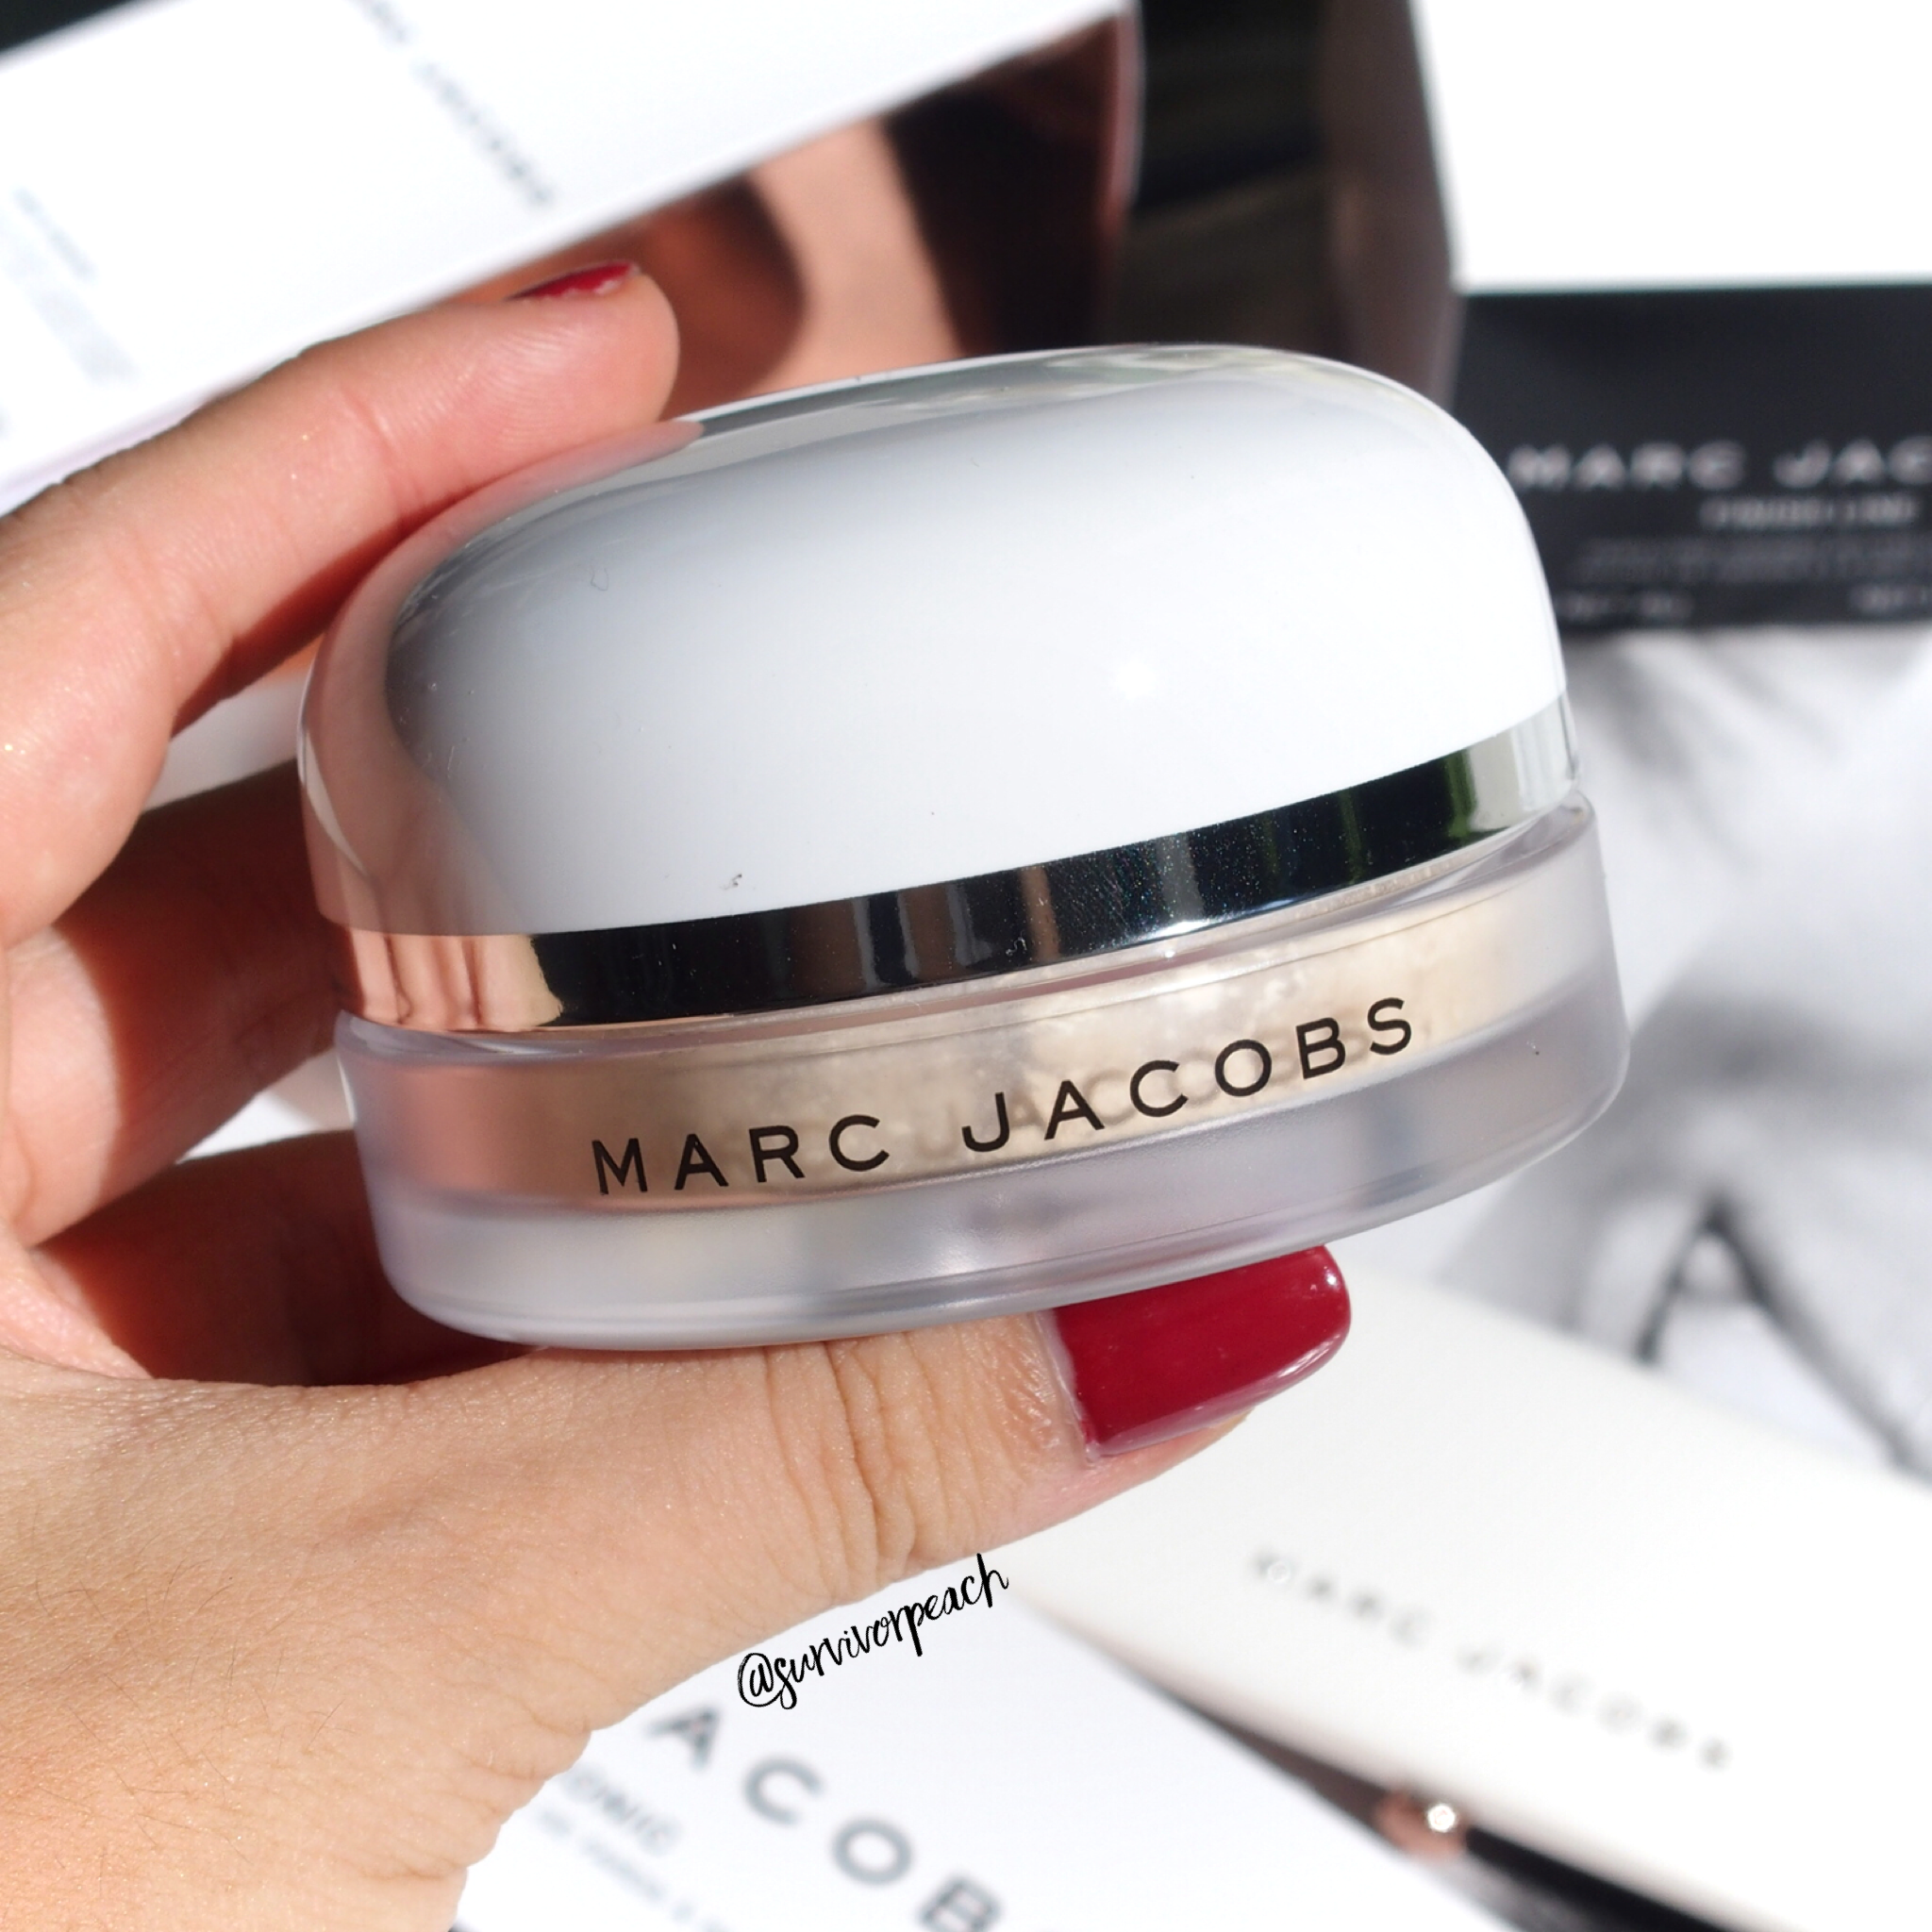 The Marc Jacobs Coconut Setting Powder